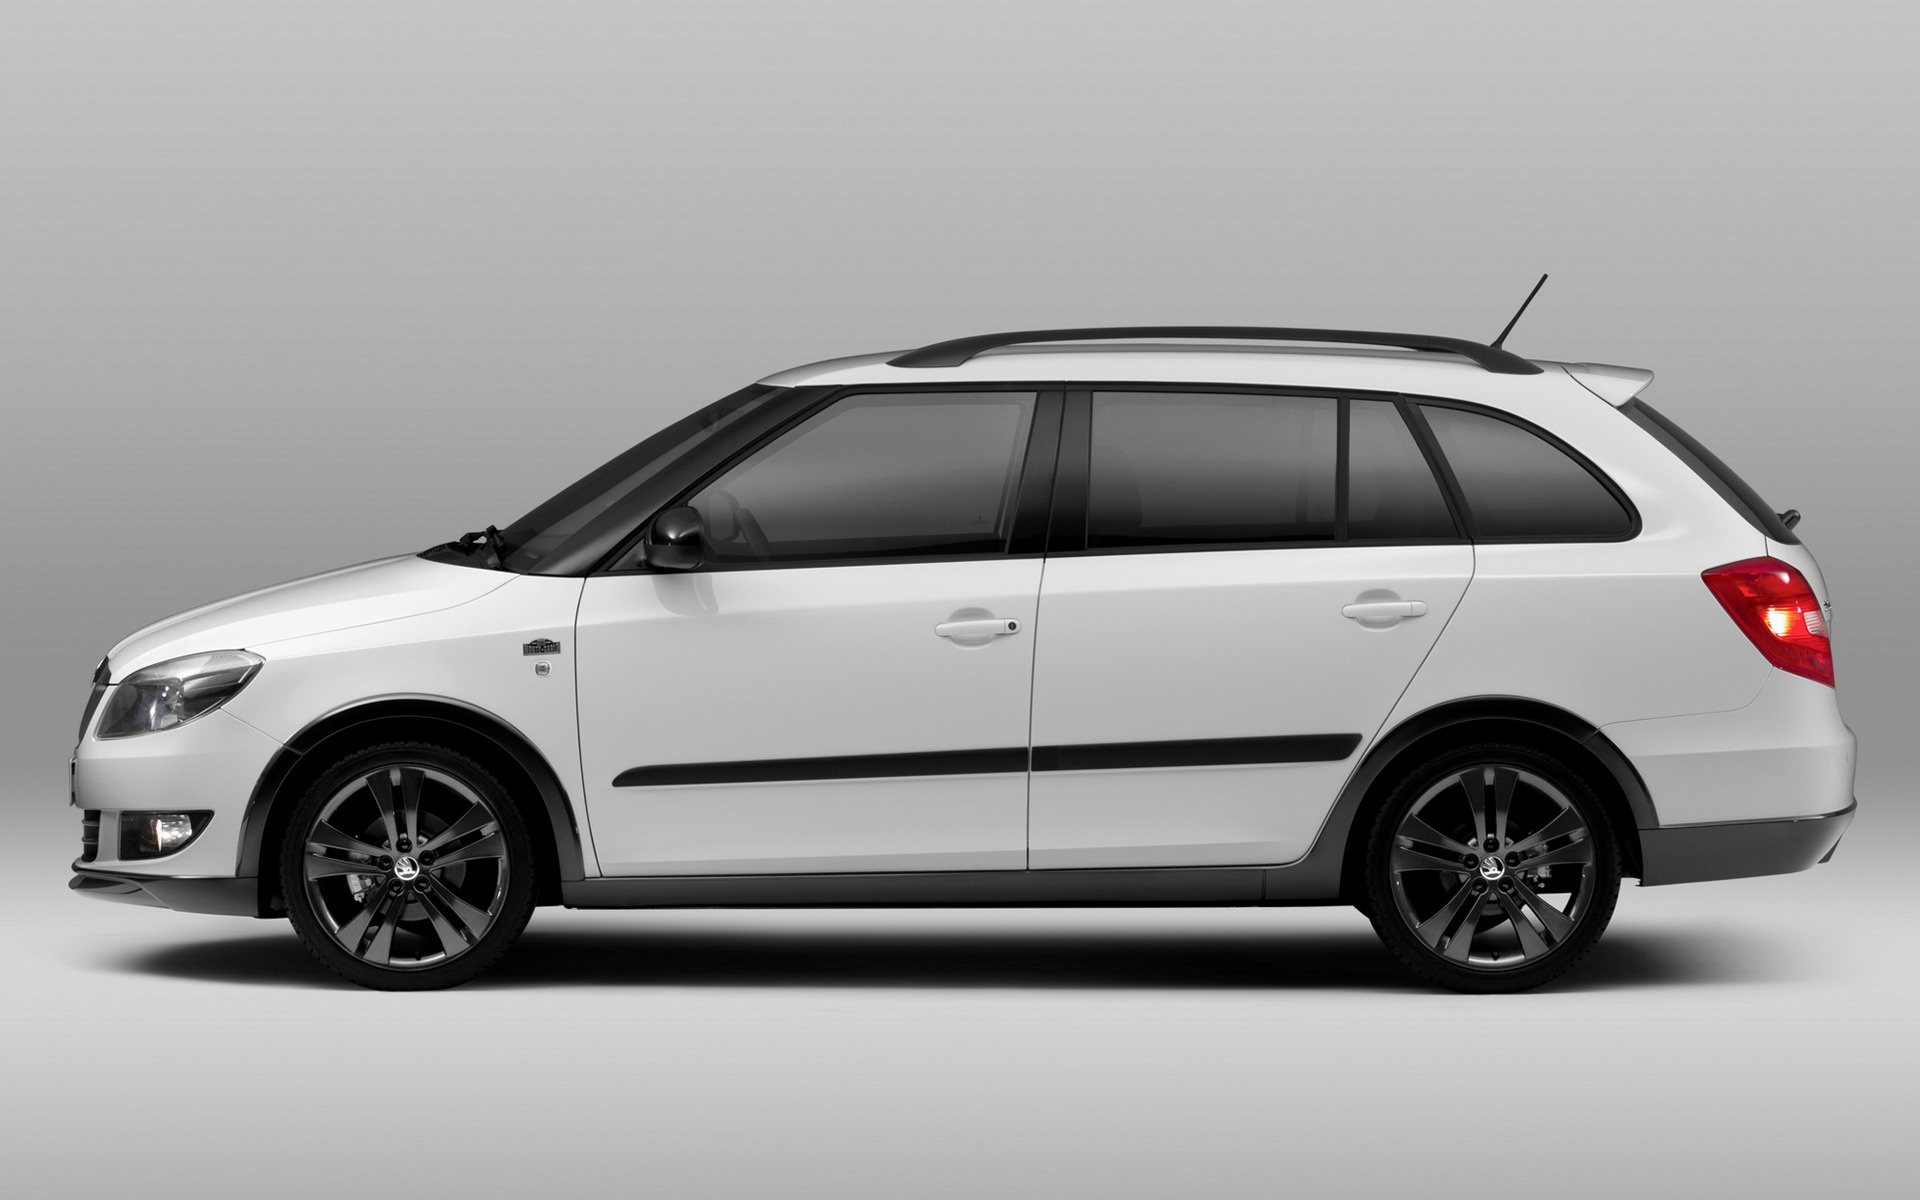 2011 Skoda Fabia Combi Monte Carlo - Wallpapers and HD Images | Car Pixel